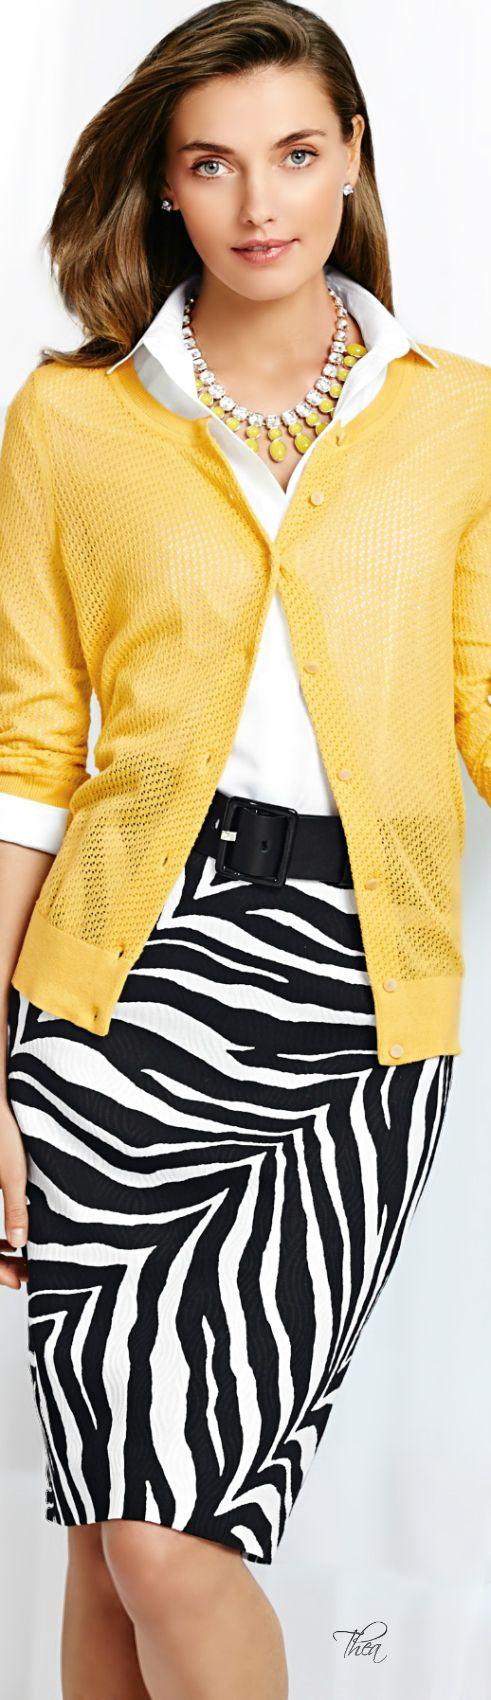 Zebra print skirt, white collar shirt, yellow cardigan, yellow and crystal necklace, crystal earrings: